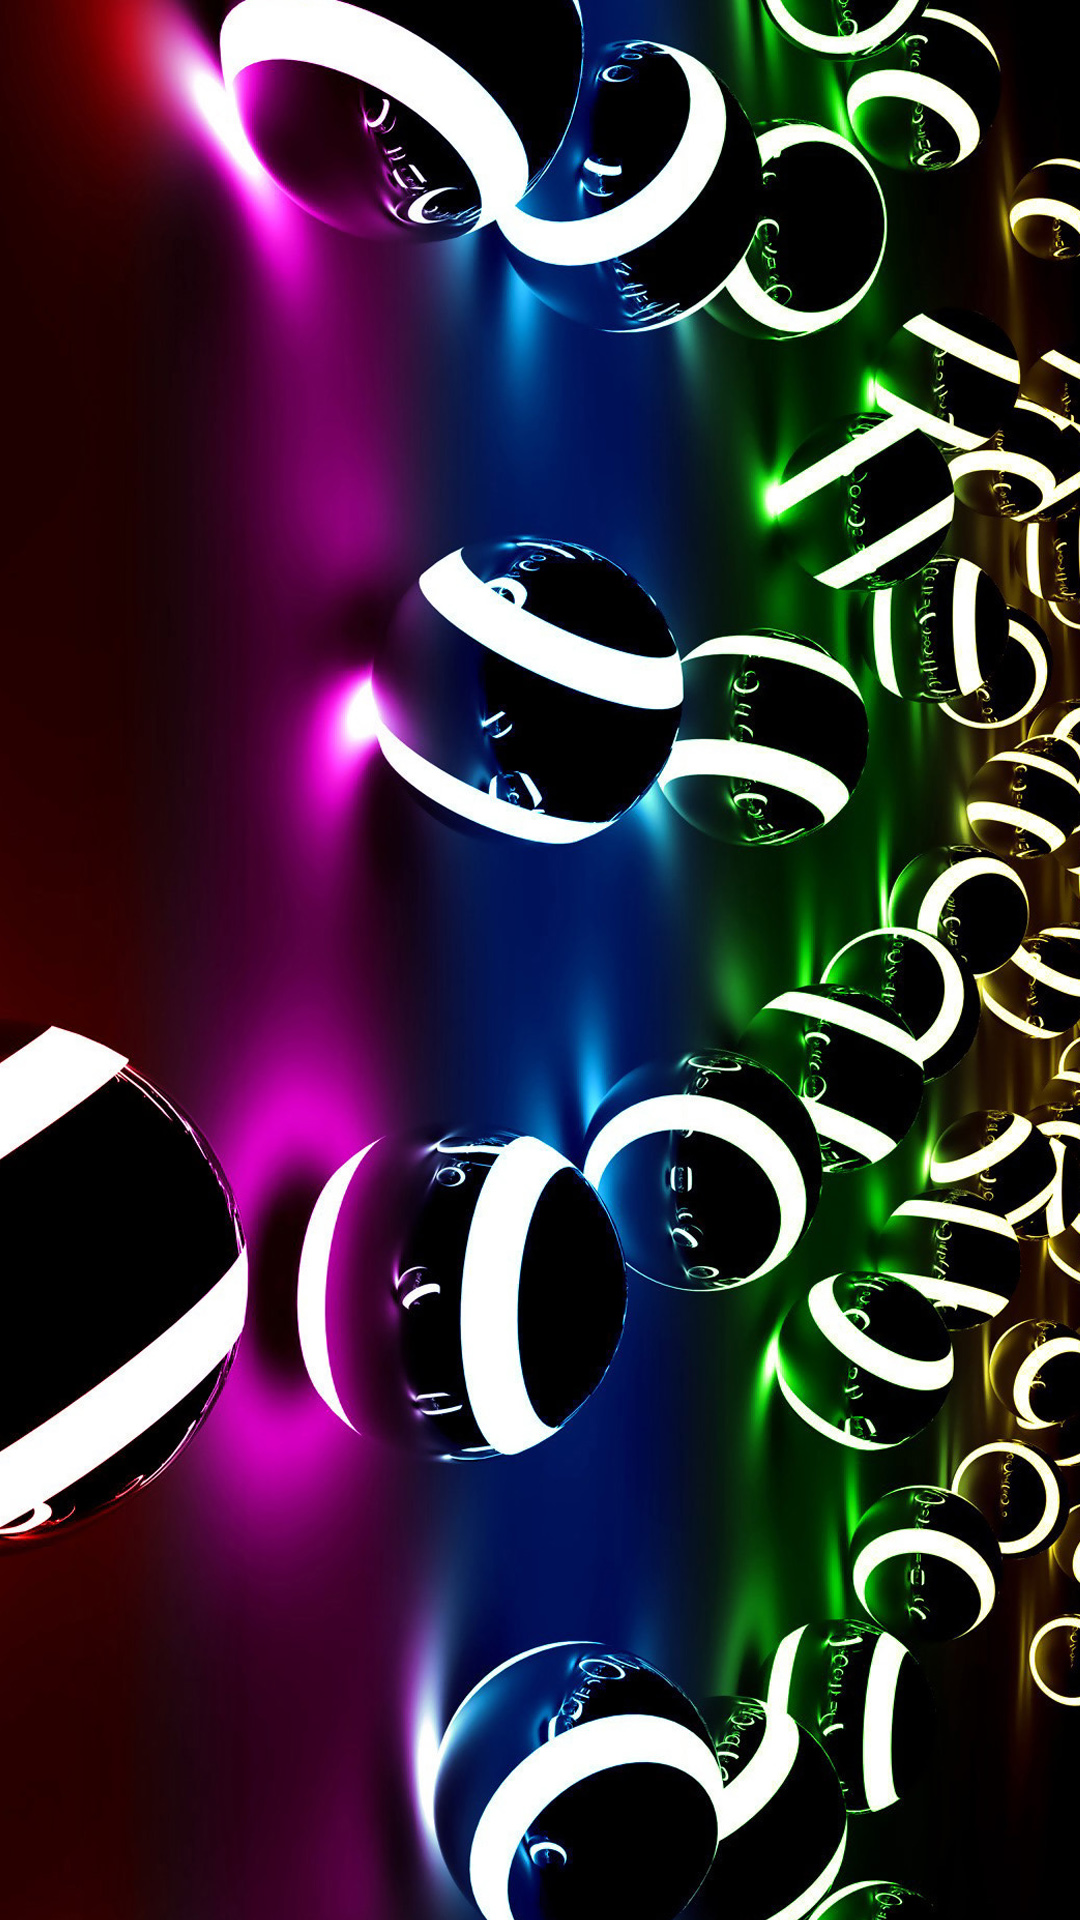 Free Download 3d Black And White Ring Beads Samsung Galaxy S5 Wallpapers Samsung 1080x1920 For Your Desktop Mobile Tablet Explore 33 Samsung Galaxy S5 Black Wallpaper Samsung Galaxy Wallpaper